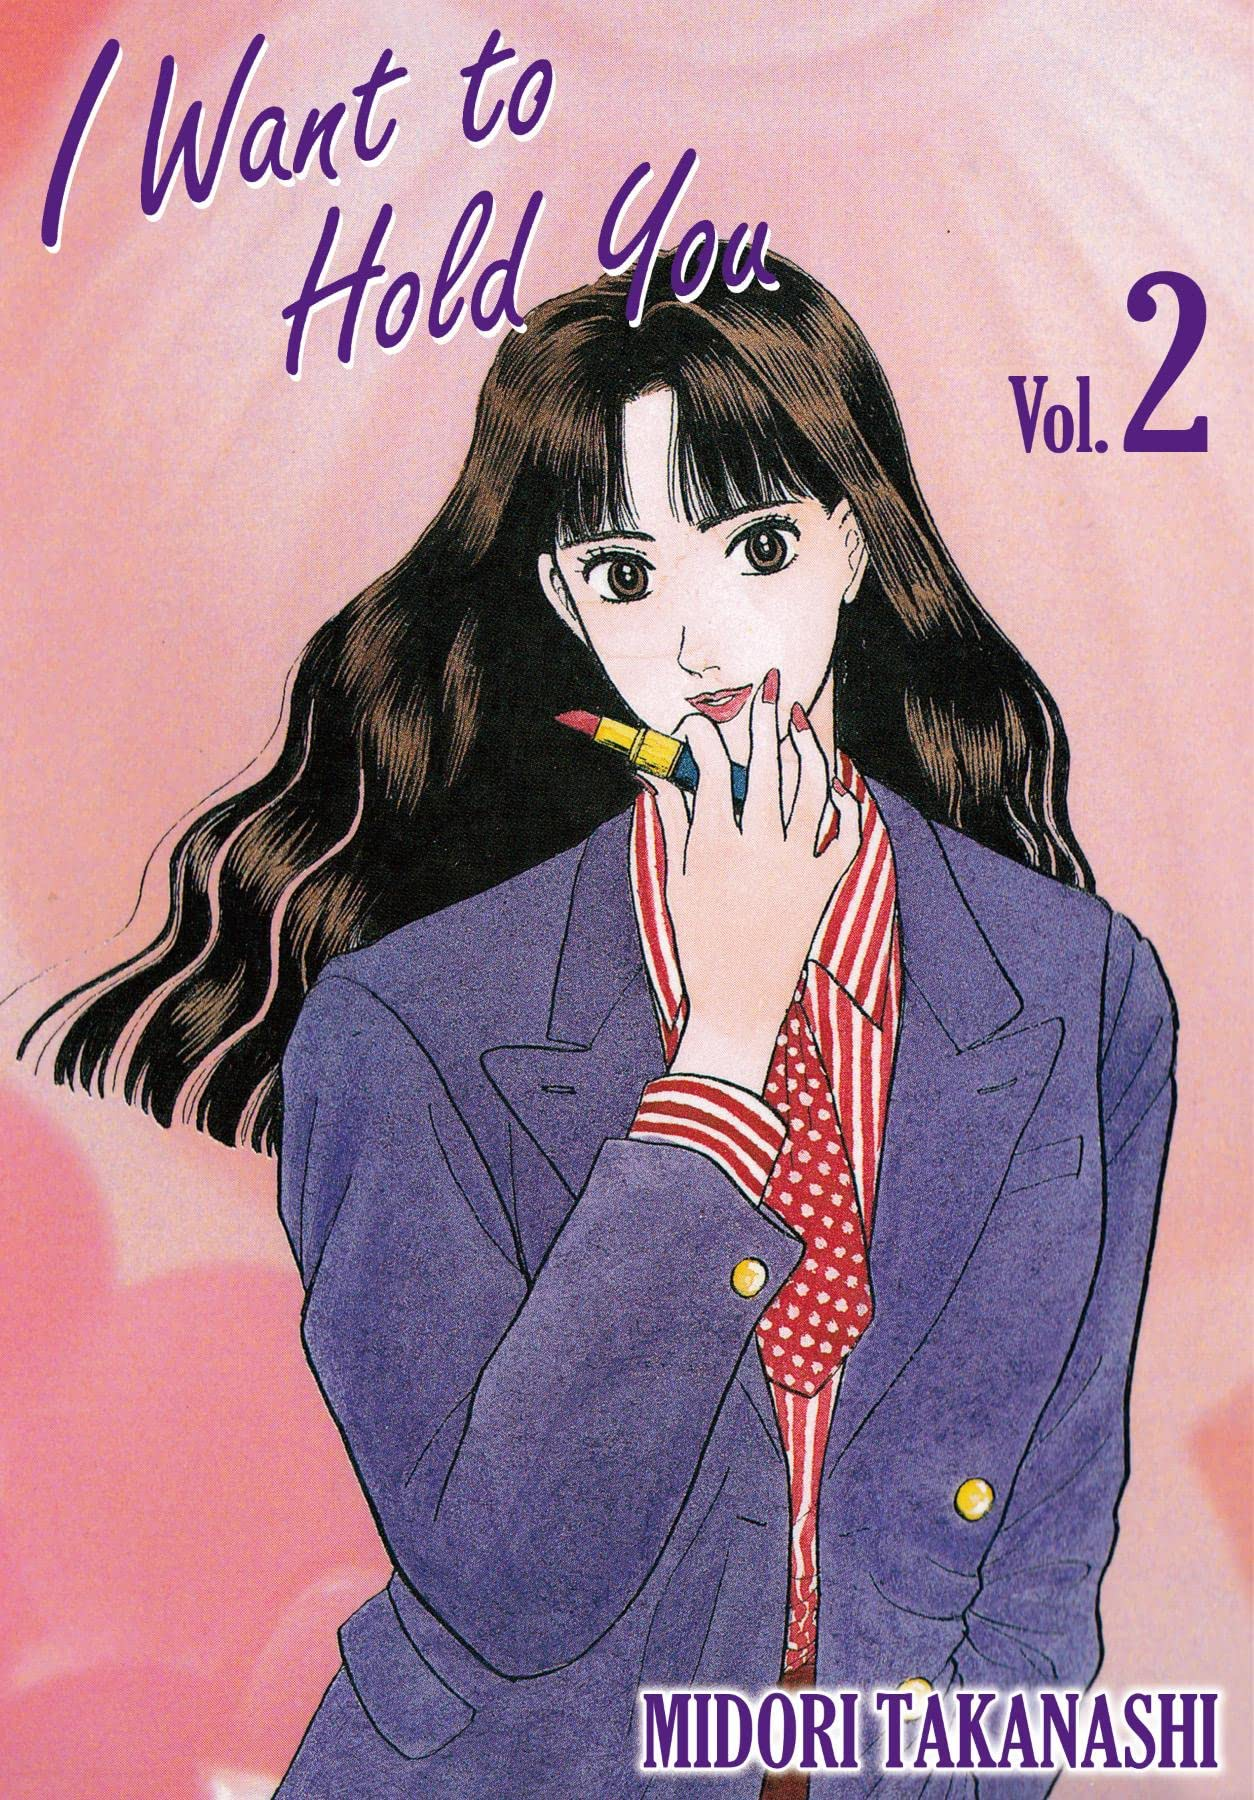 I WANT TO HOLD YOU Vol. 2